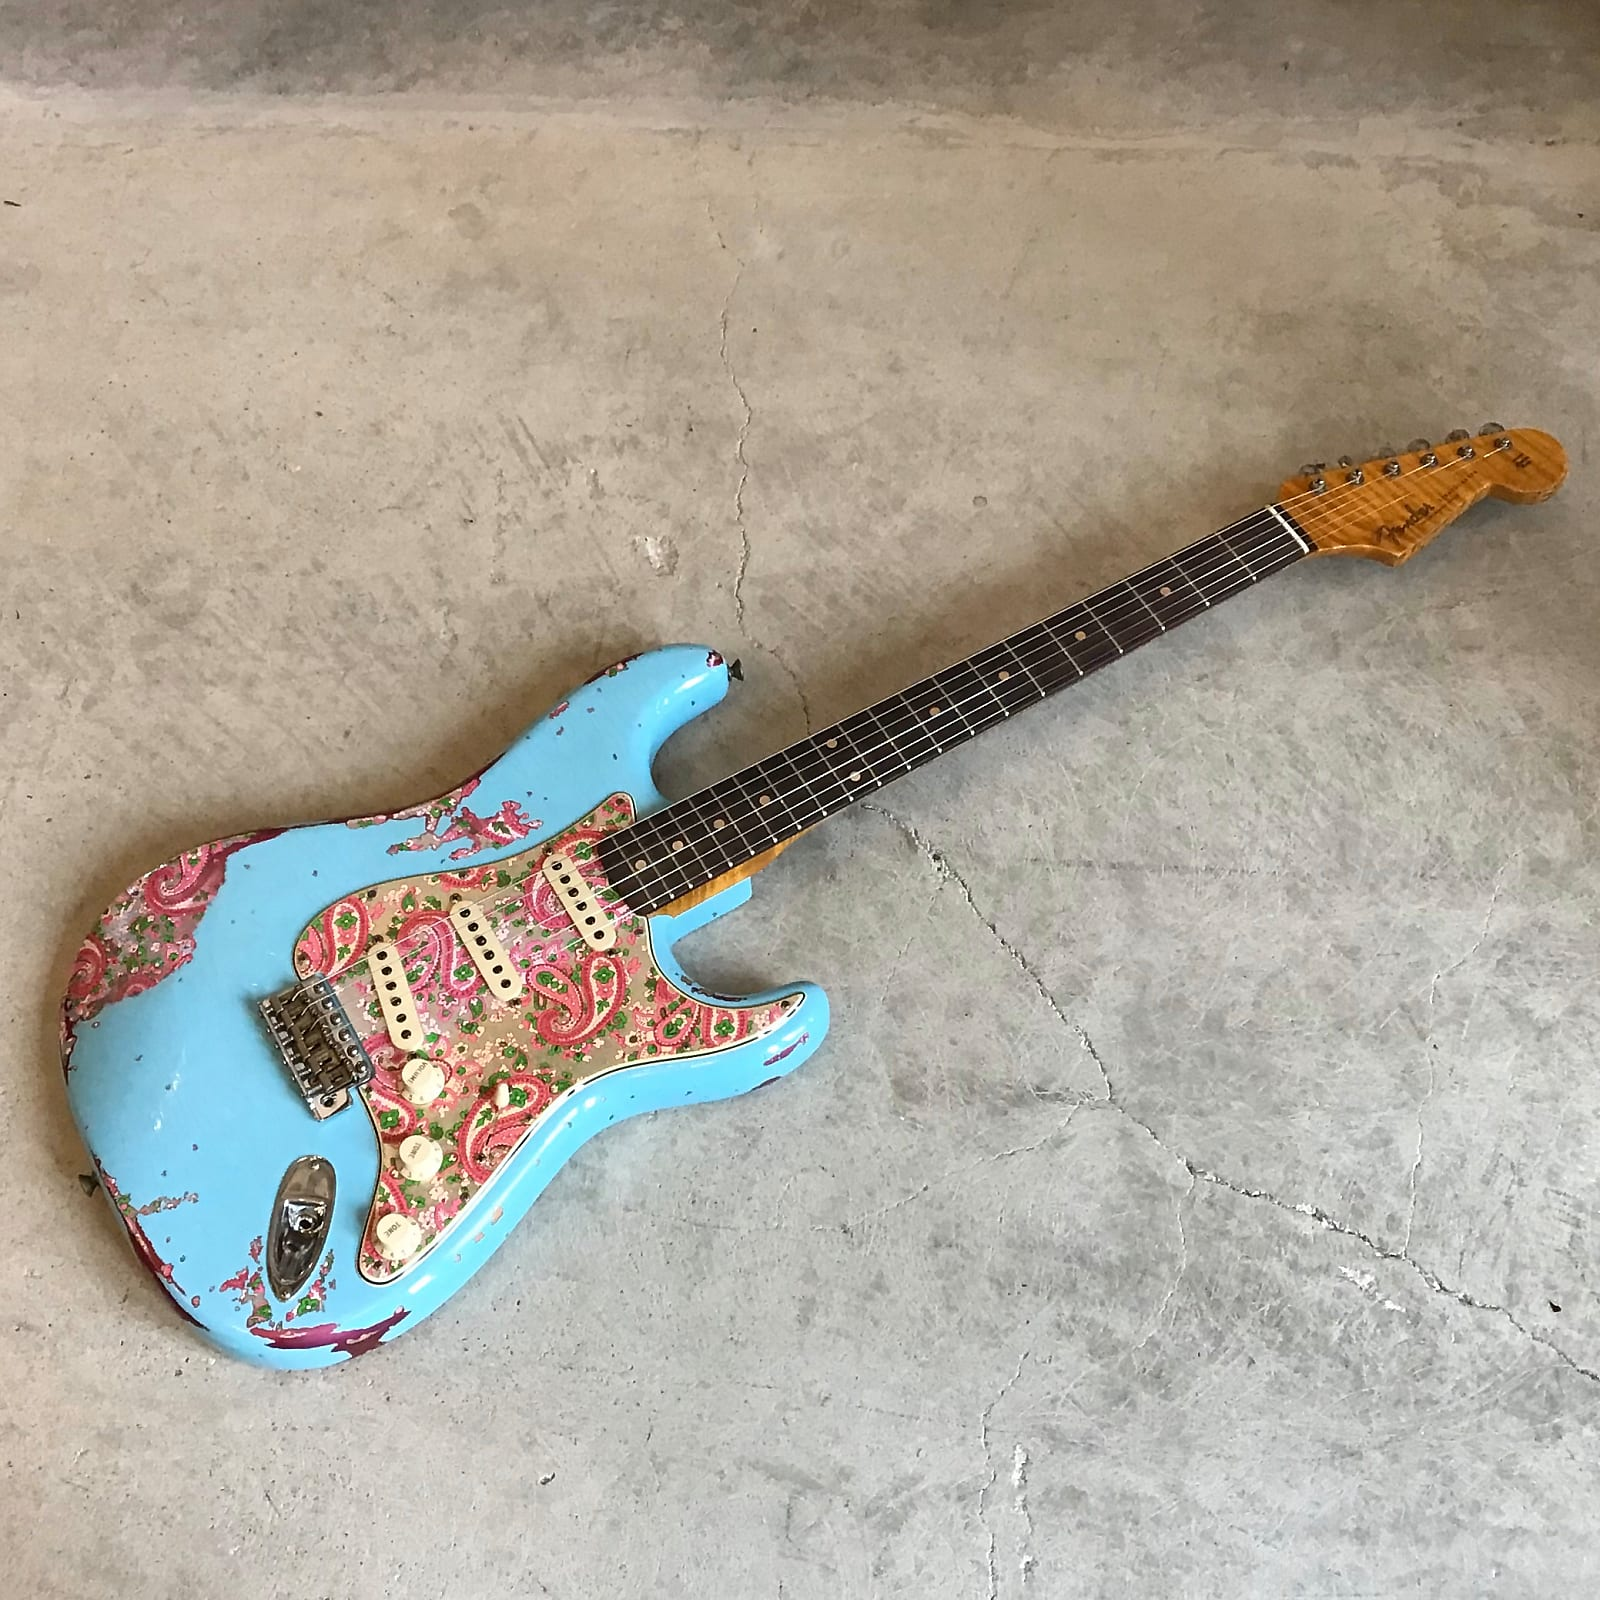 Fender Custom Shop 60's Stratocaster Heavy Relic Daphne/Pink Paisley